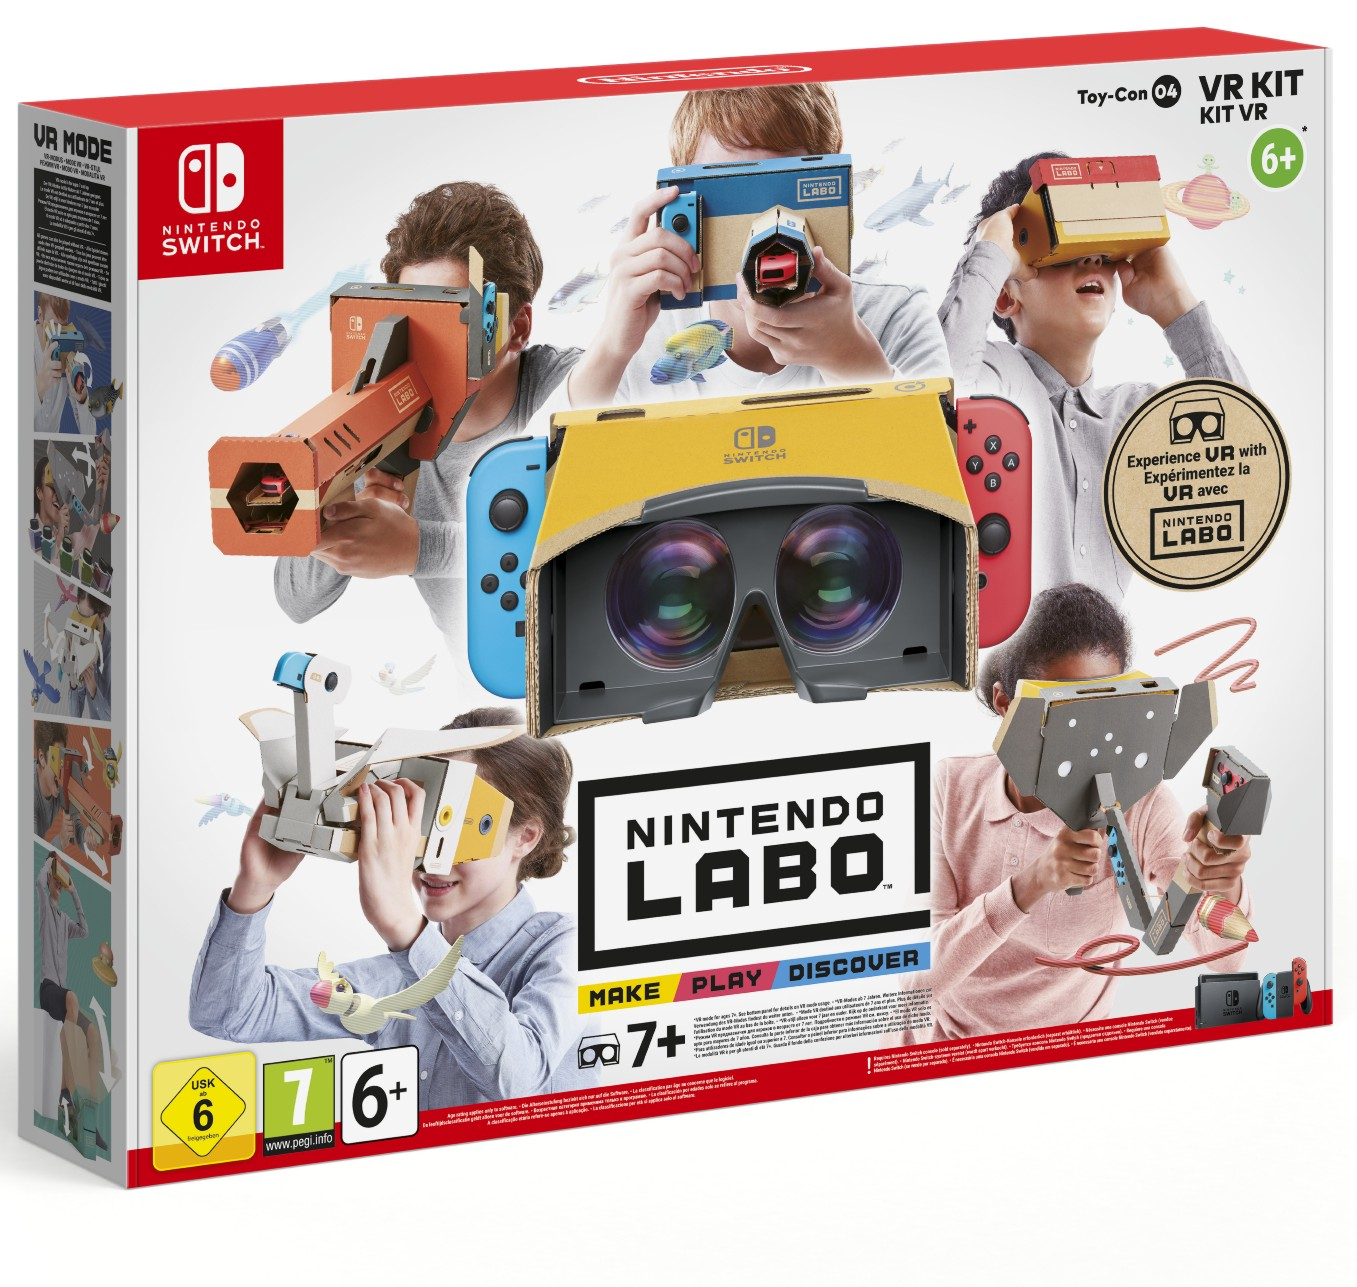 Nintendo Labo VR Kit: Toy-con 04 Complete - Switch